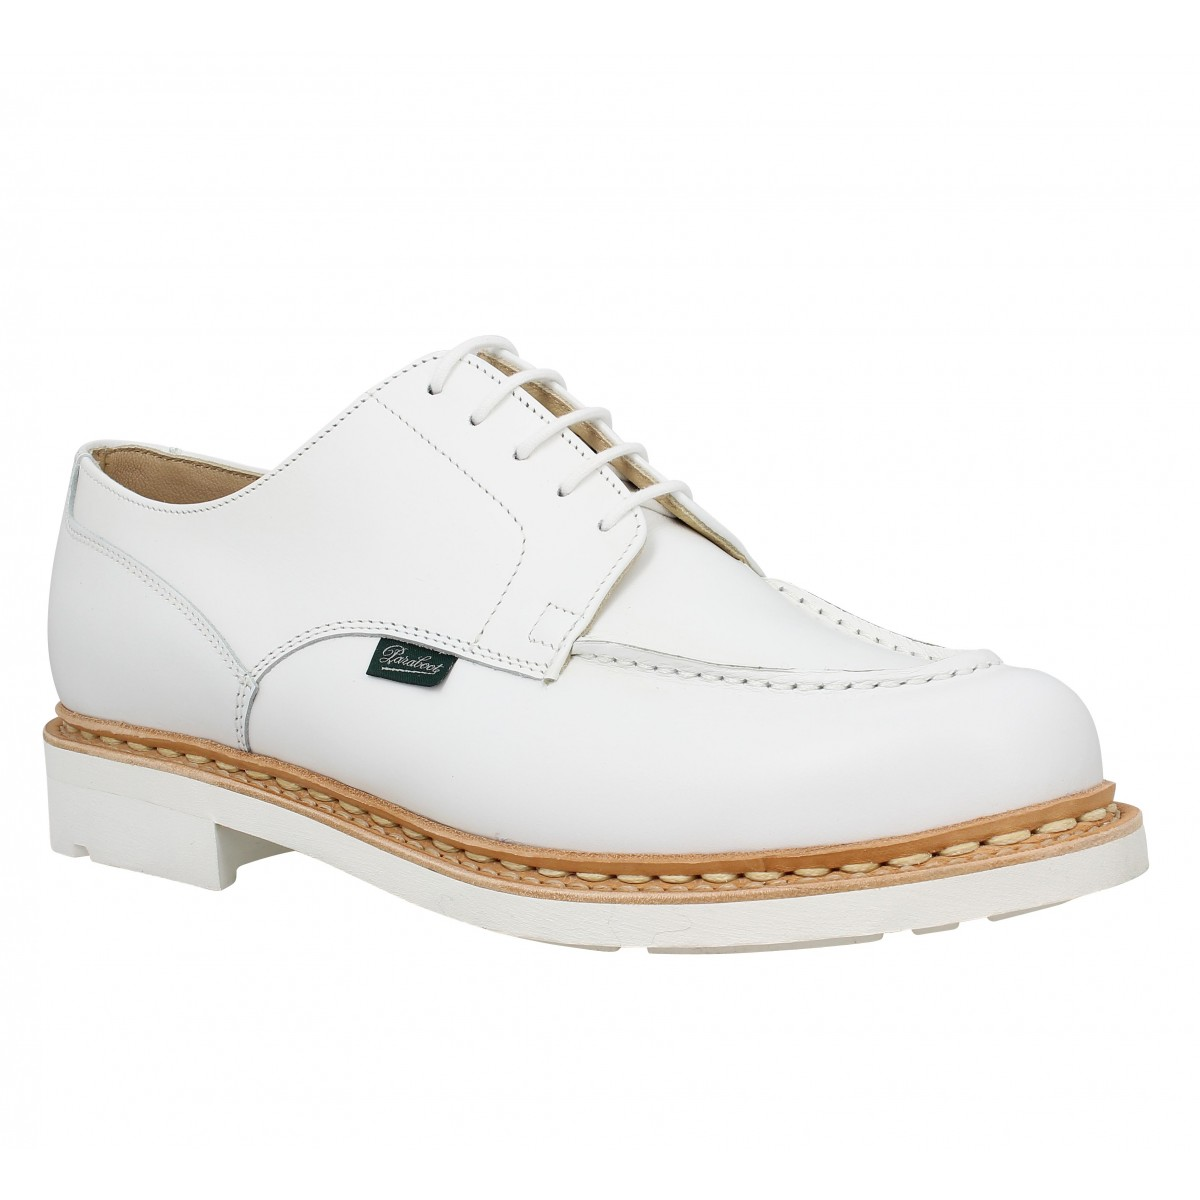 Chaussures à lacets PARABOOT Chambord cuir Homme Blanc